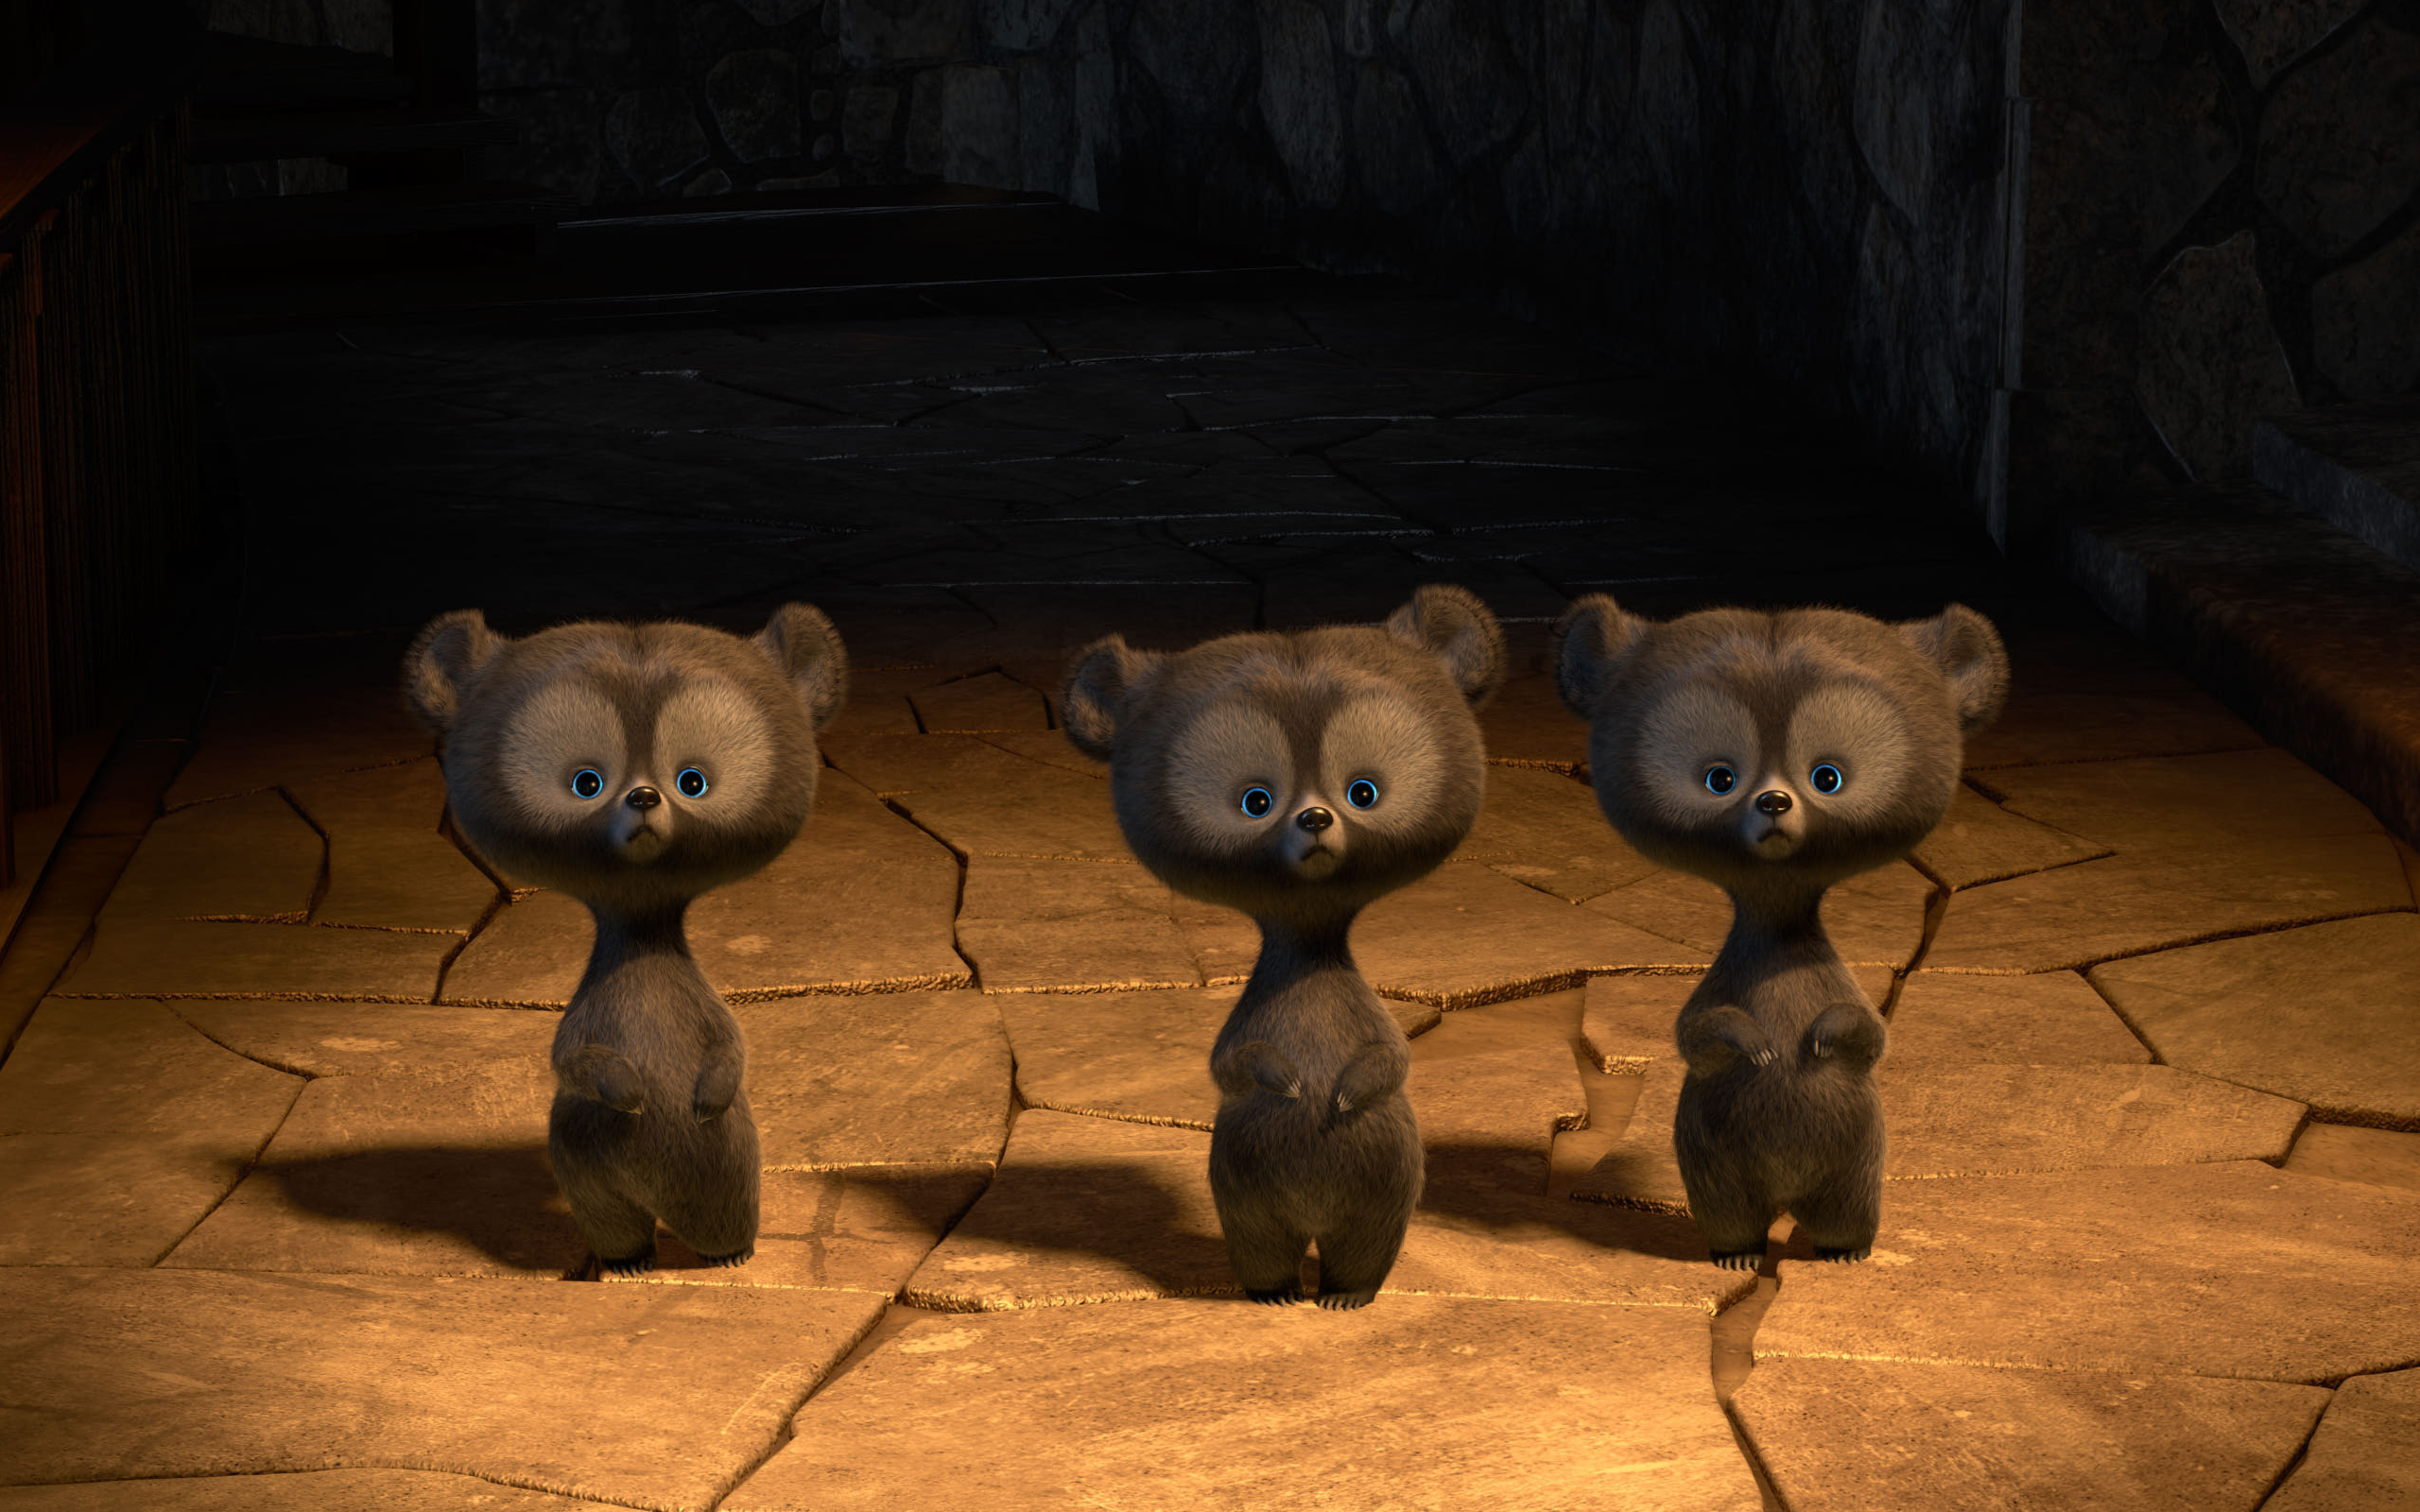 Brave Triplets Bears in High Quality and Pixel, Three Cute ...